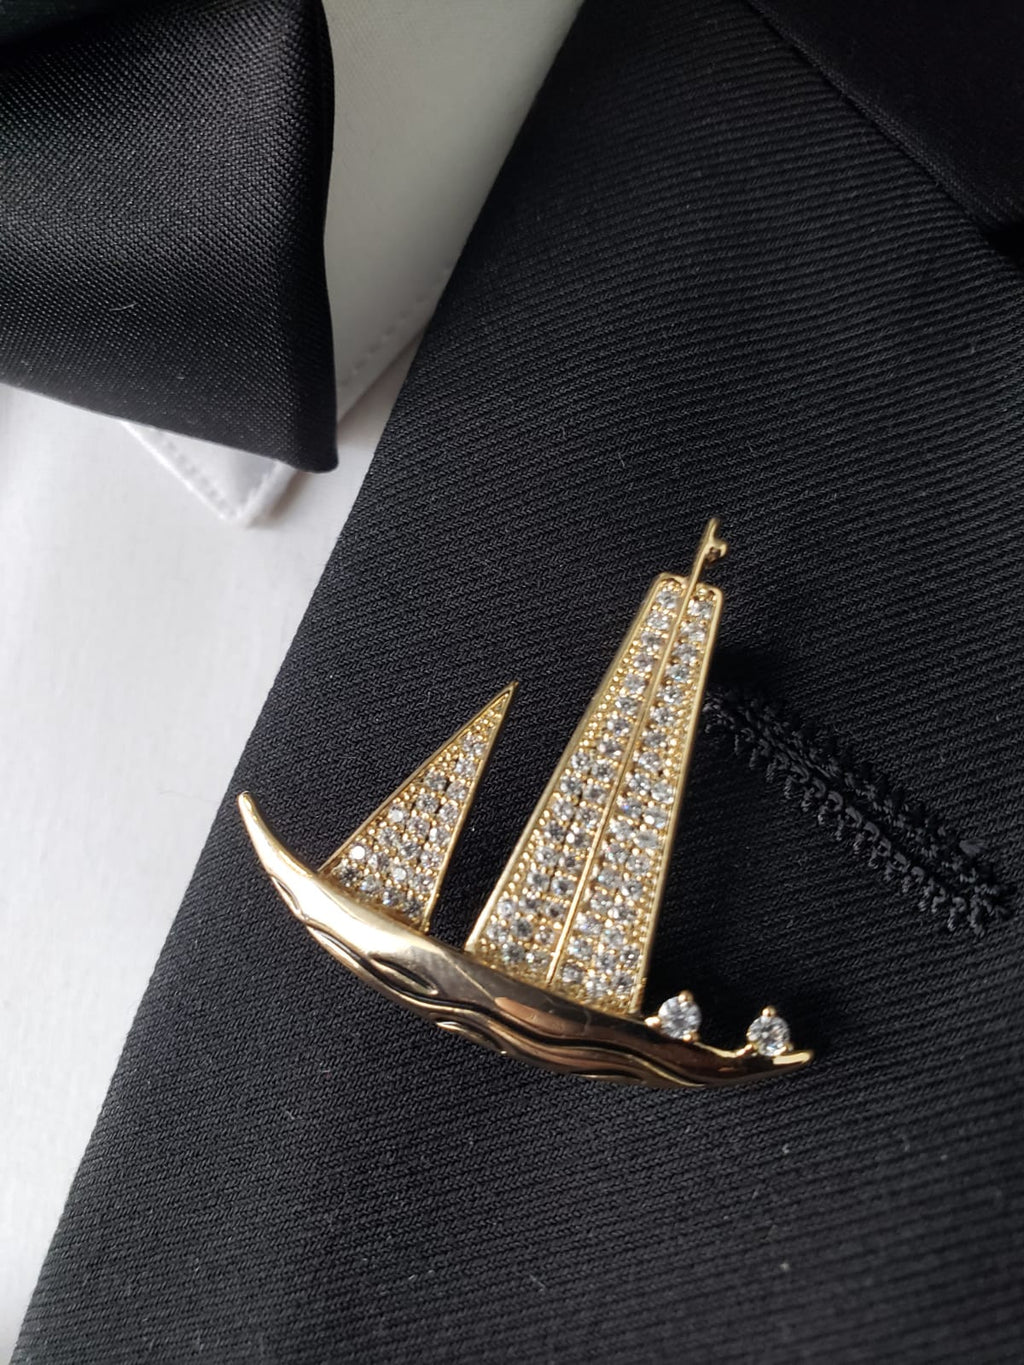 Sail Boat Rose Gold lapel pin